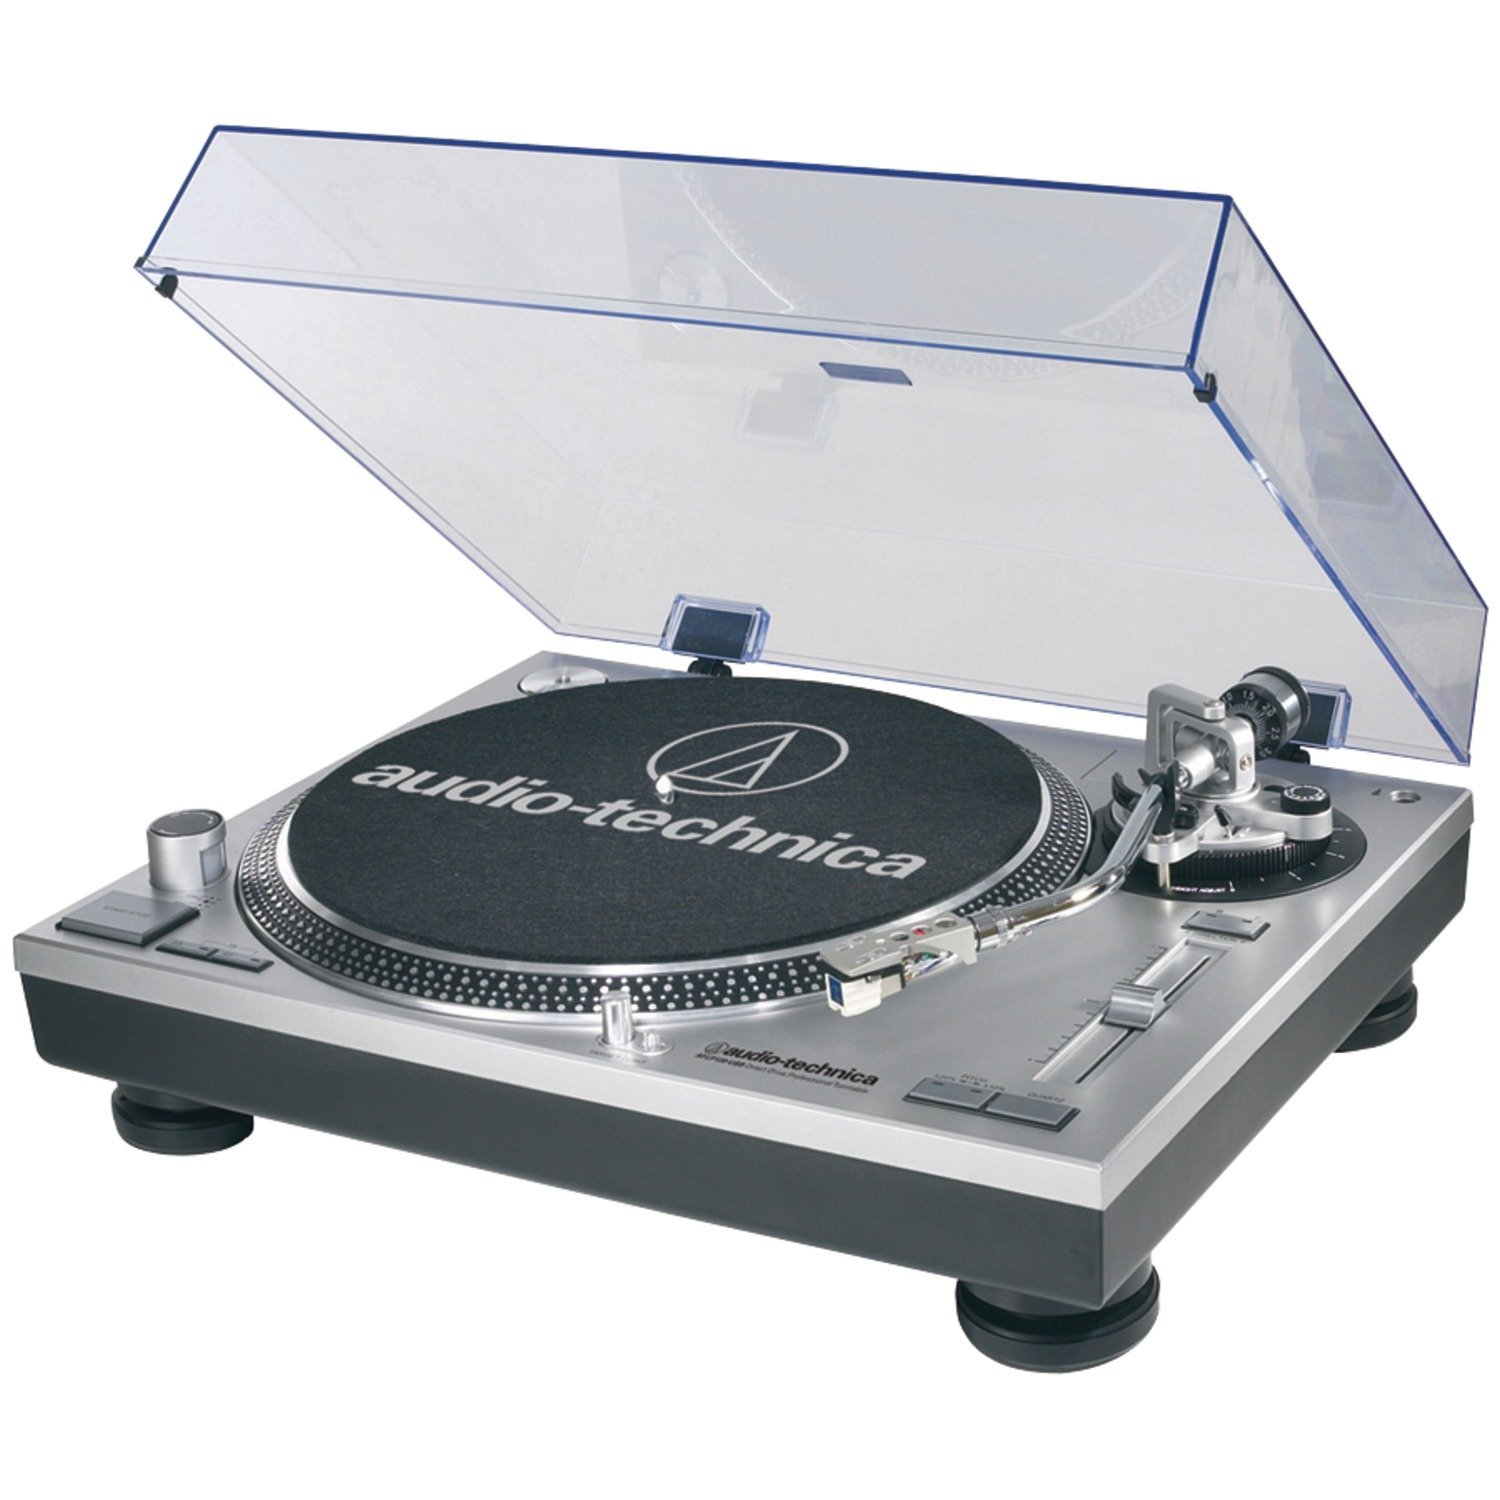 The Audio Technica AT-LP120 USB table